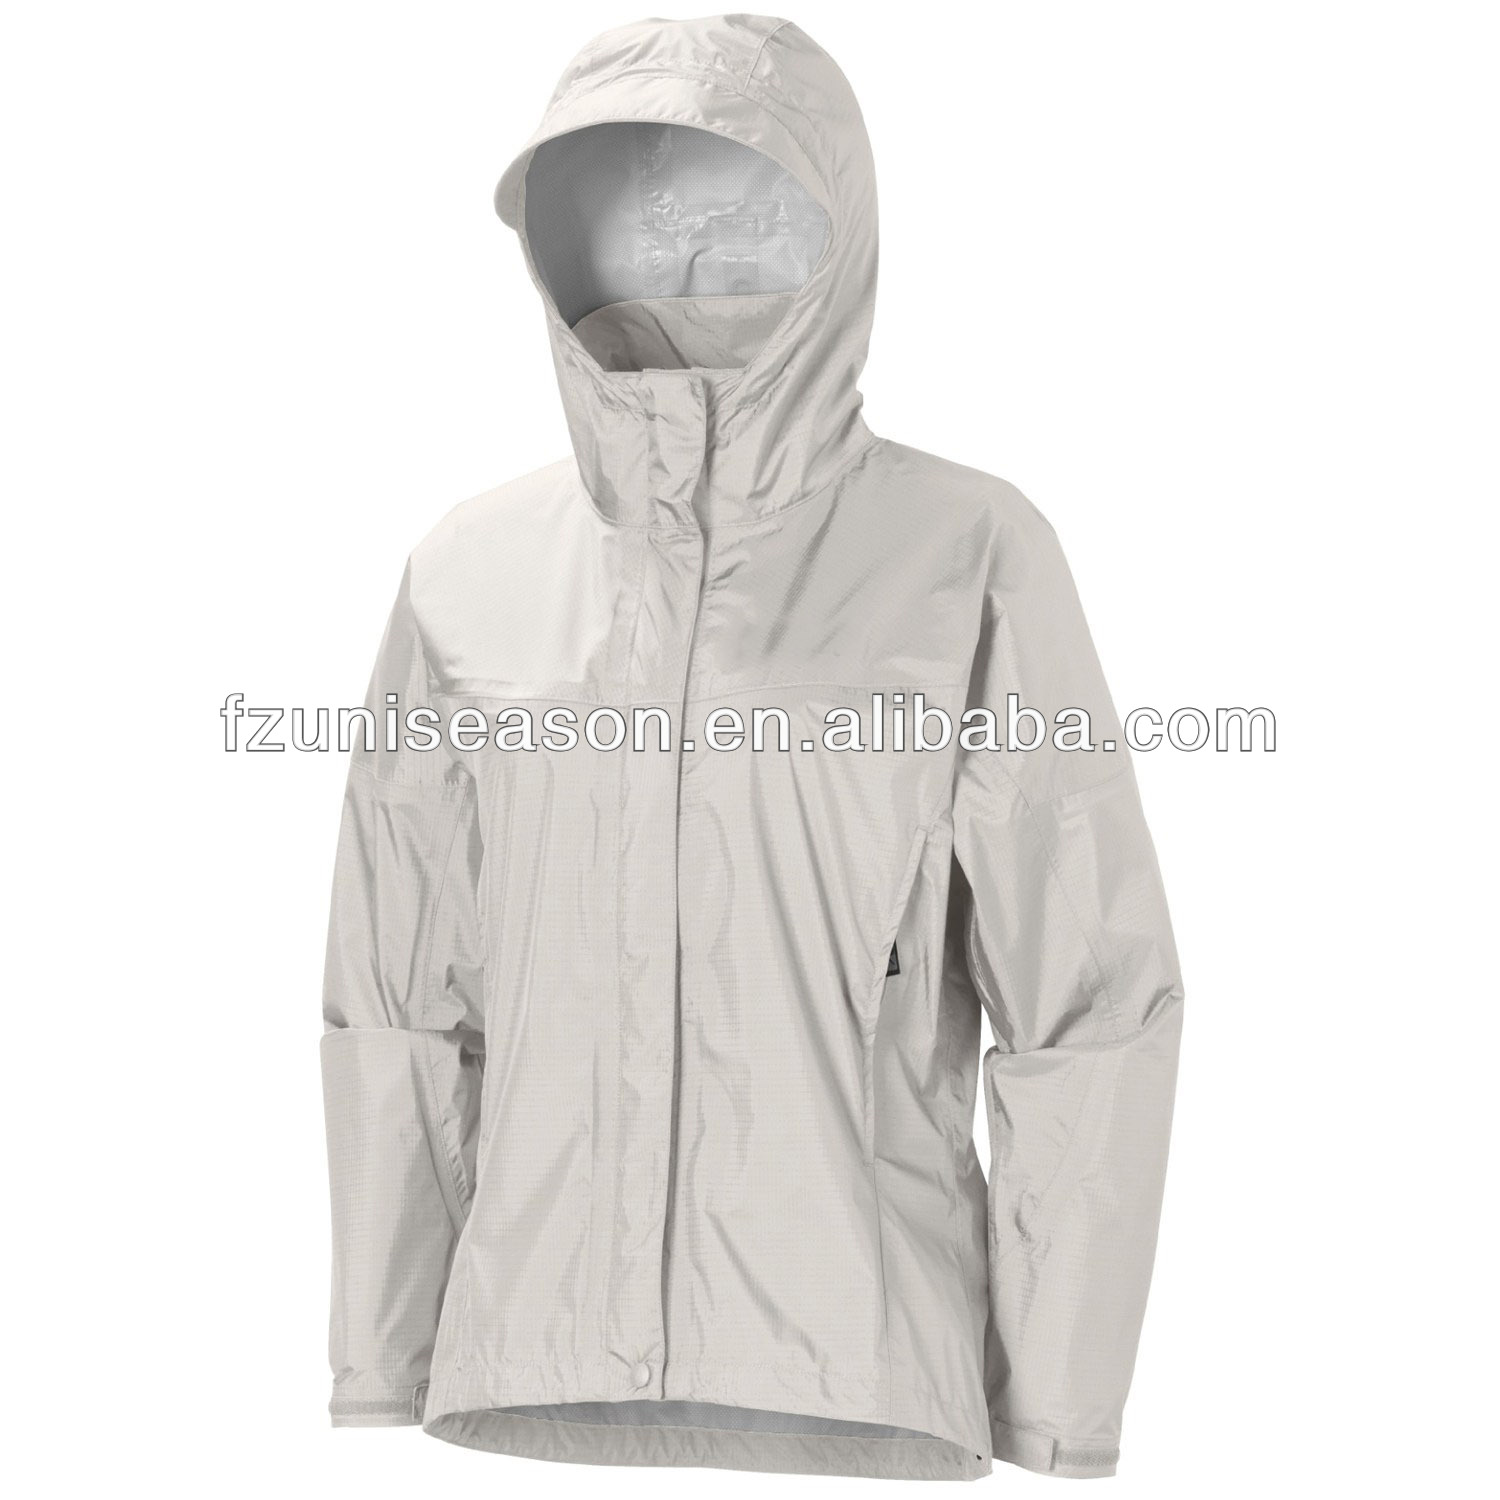 Wholesale Custom Outdoor Windbreaker Jacket, Wholesale Custom ...